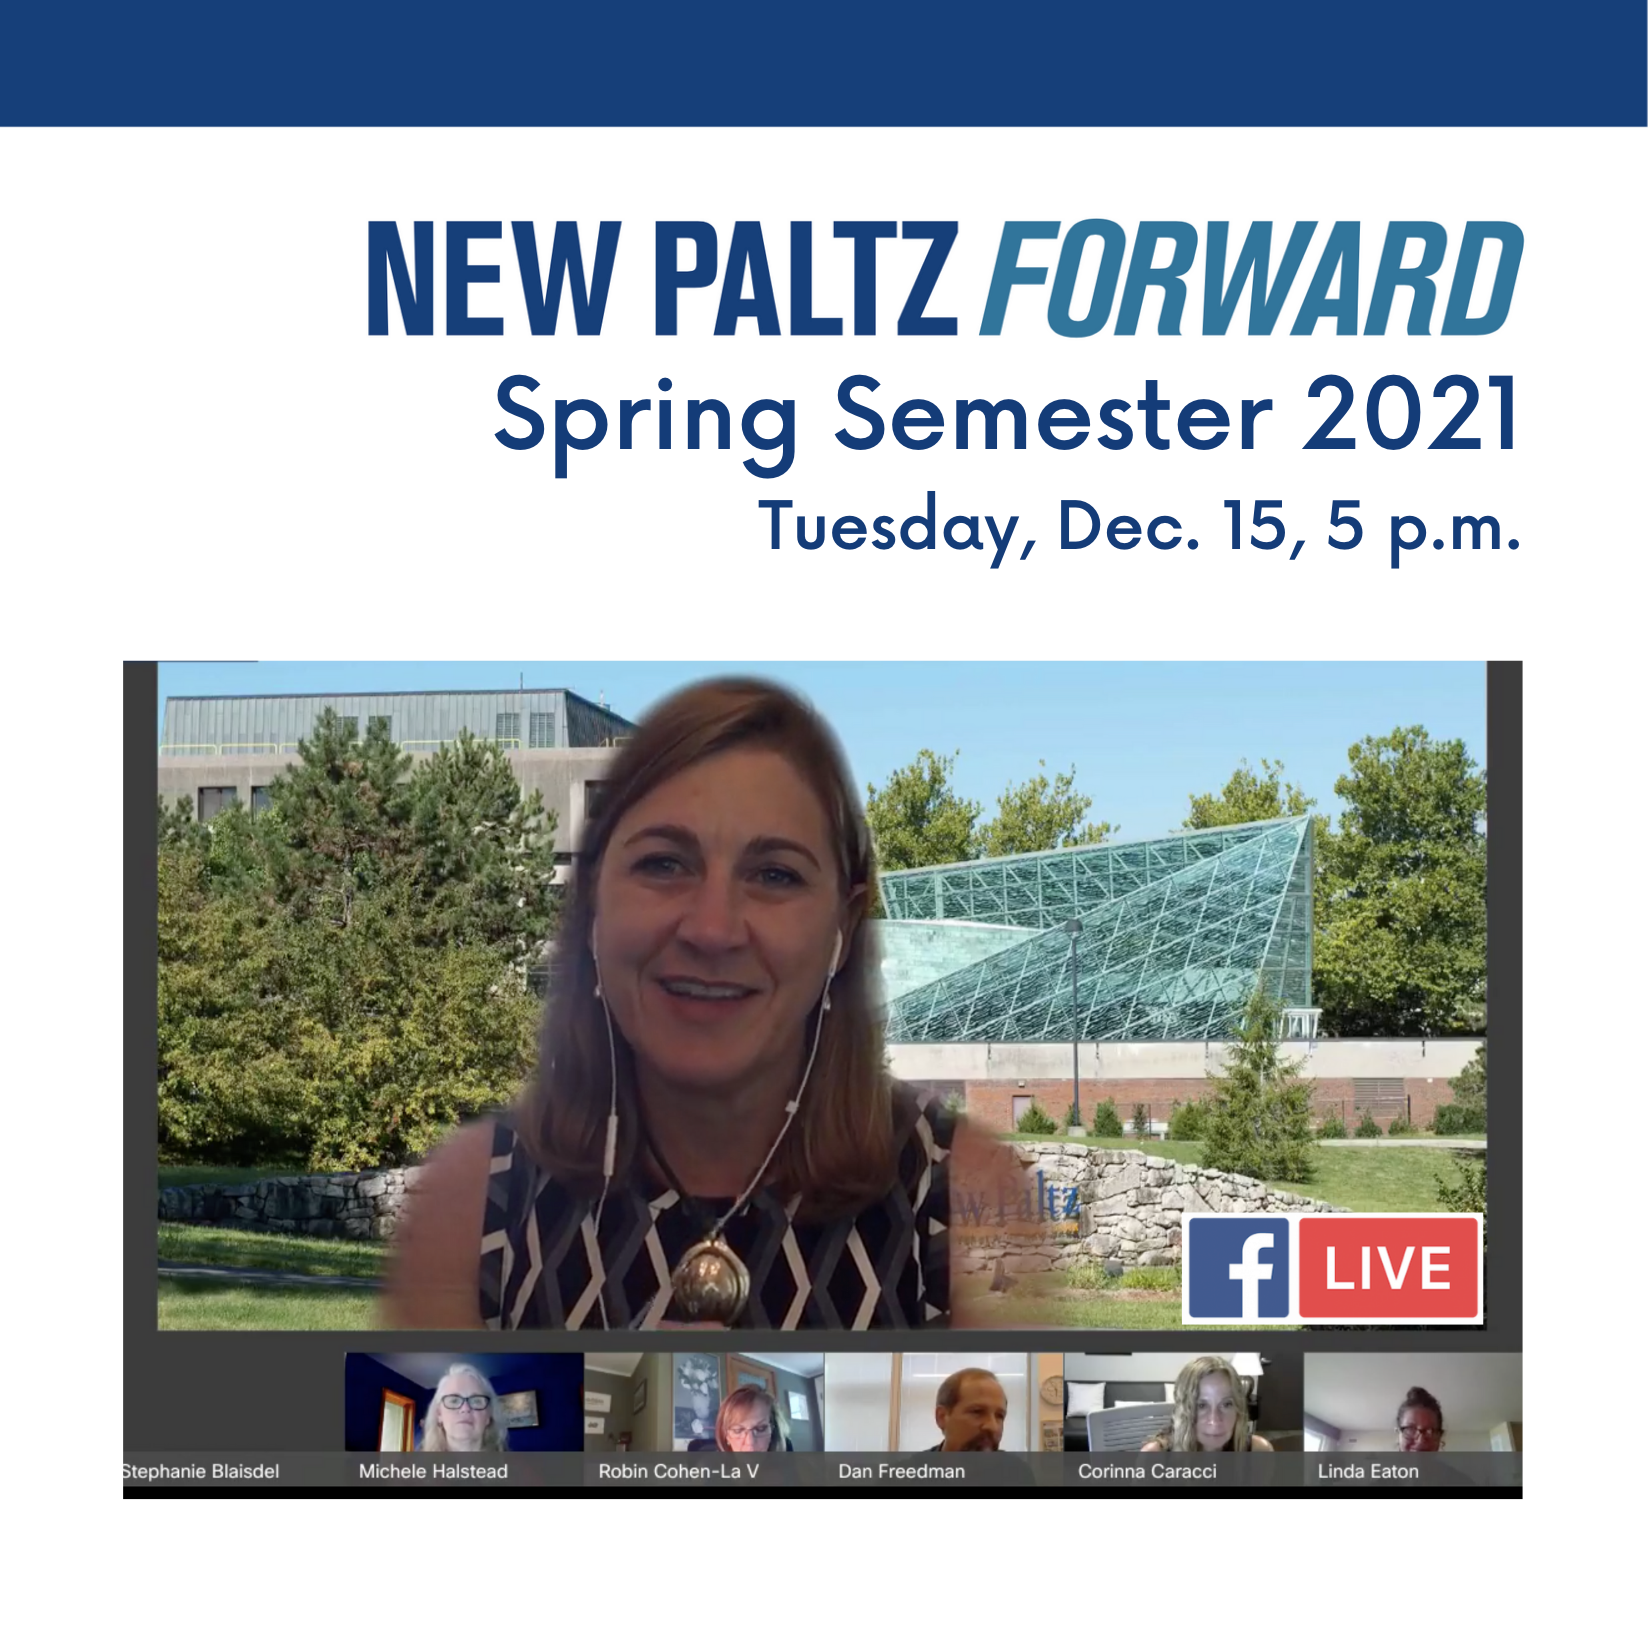 Suny New Paltz Christmas Break 2021 What Students Can Expect In Spring 2021 A Facebook Live Event With Campus Leaders Dec 15 Suny New Paltz News